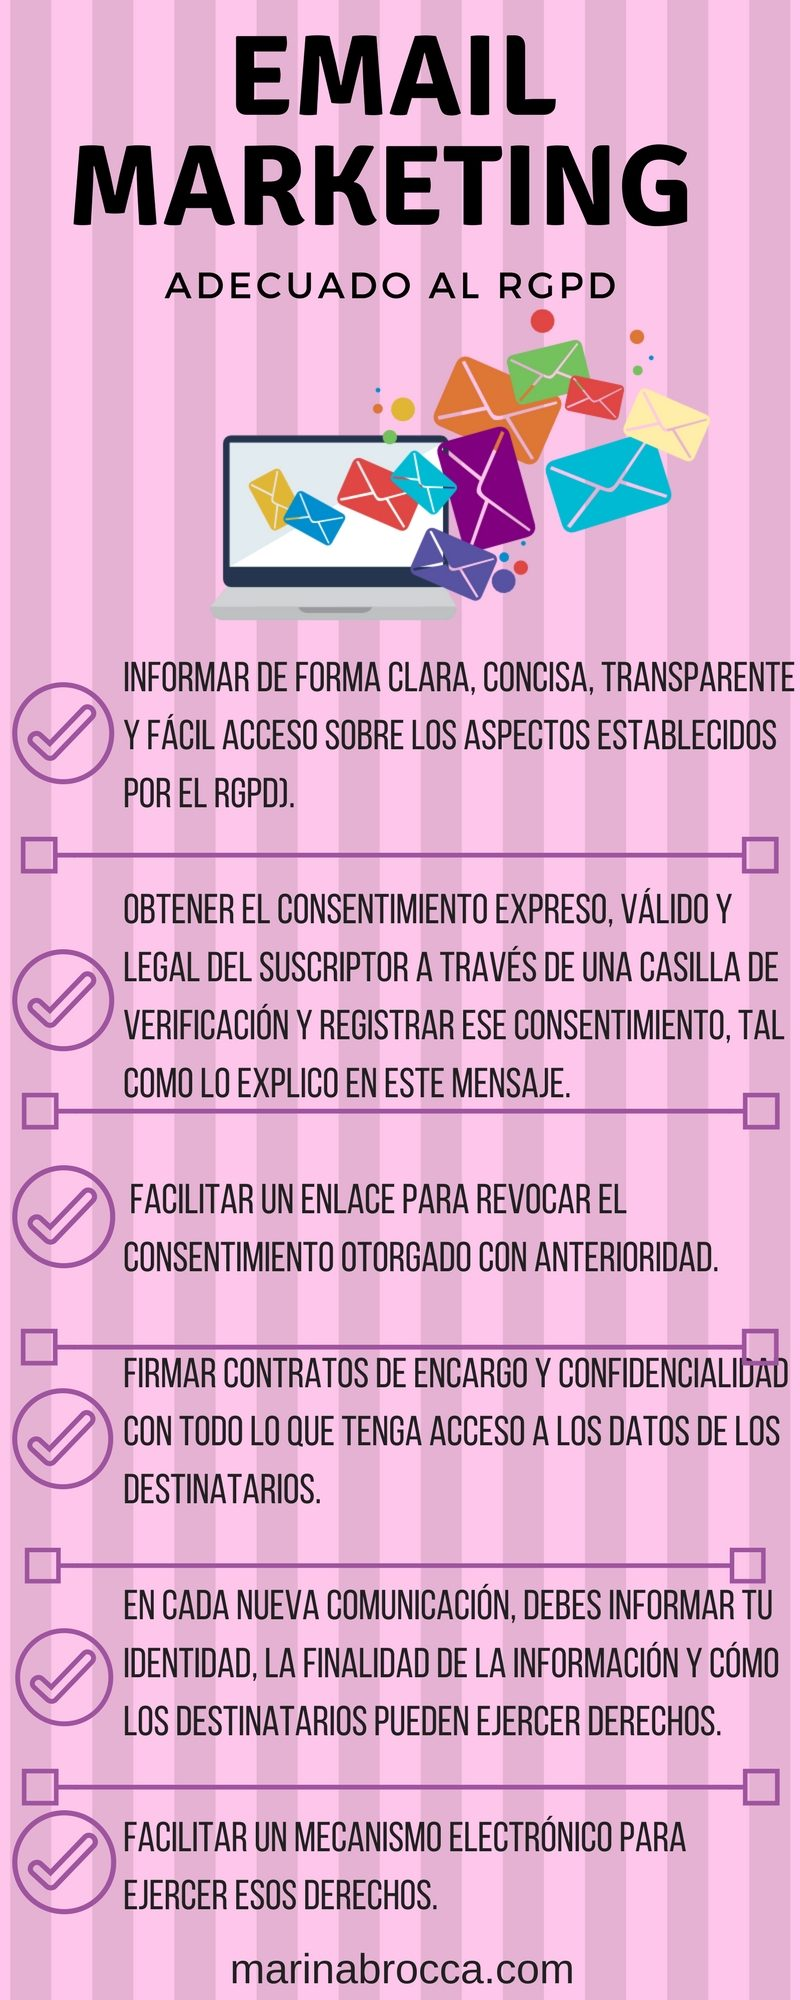 Las 12 reglas de una campaña de email marketing RGPD